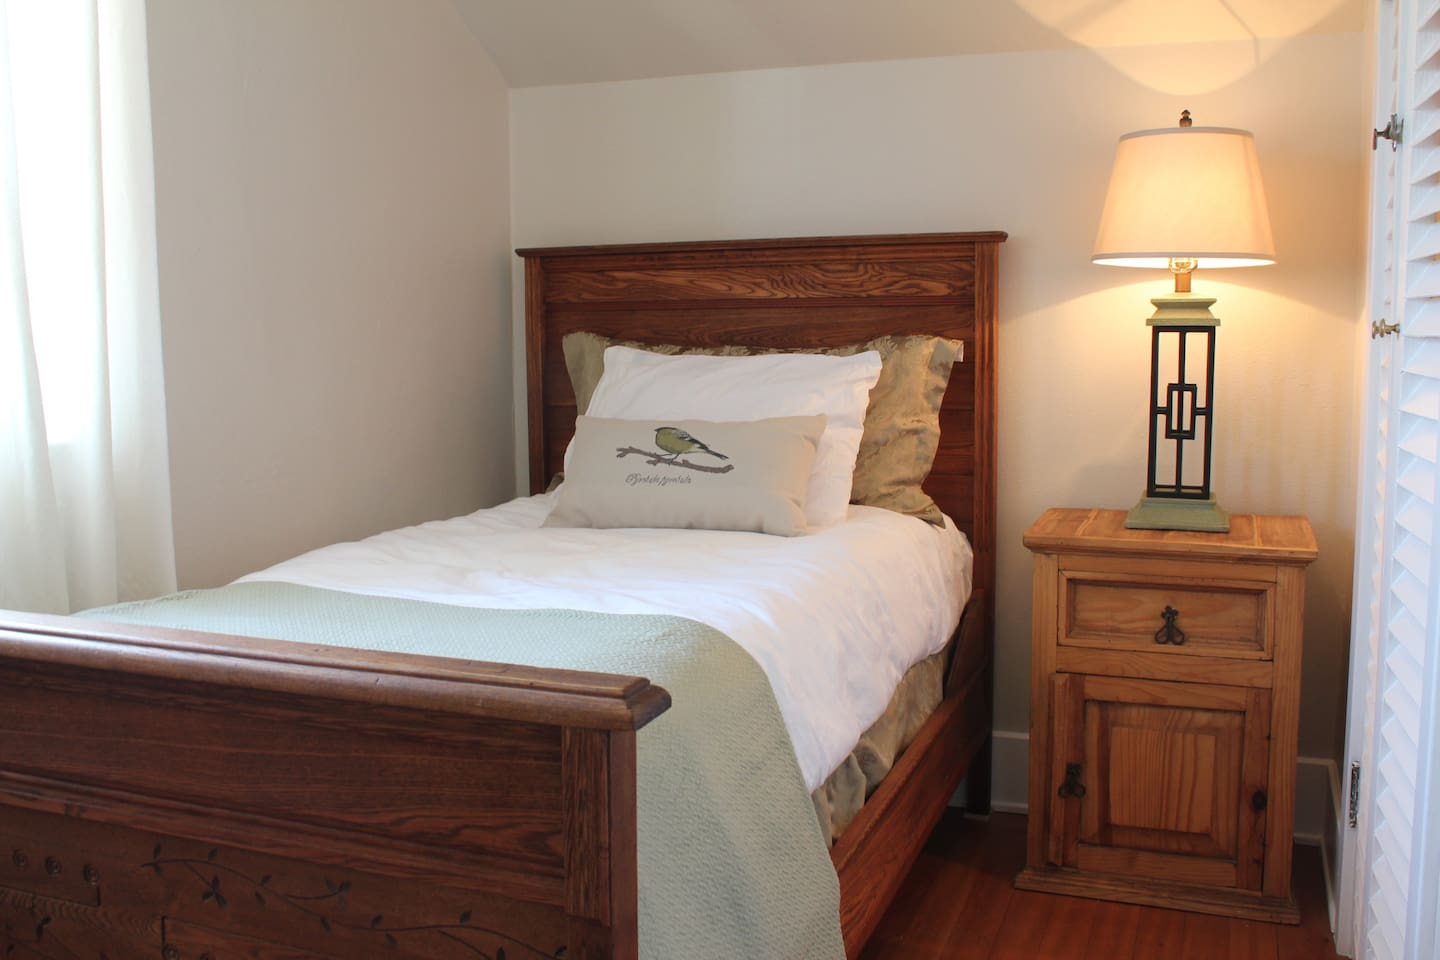 Small cozy single bed